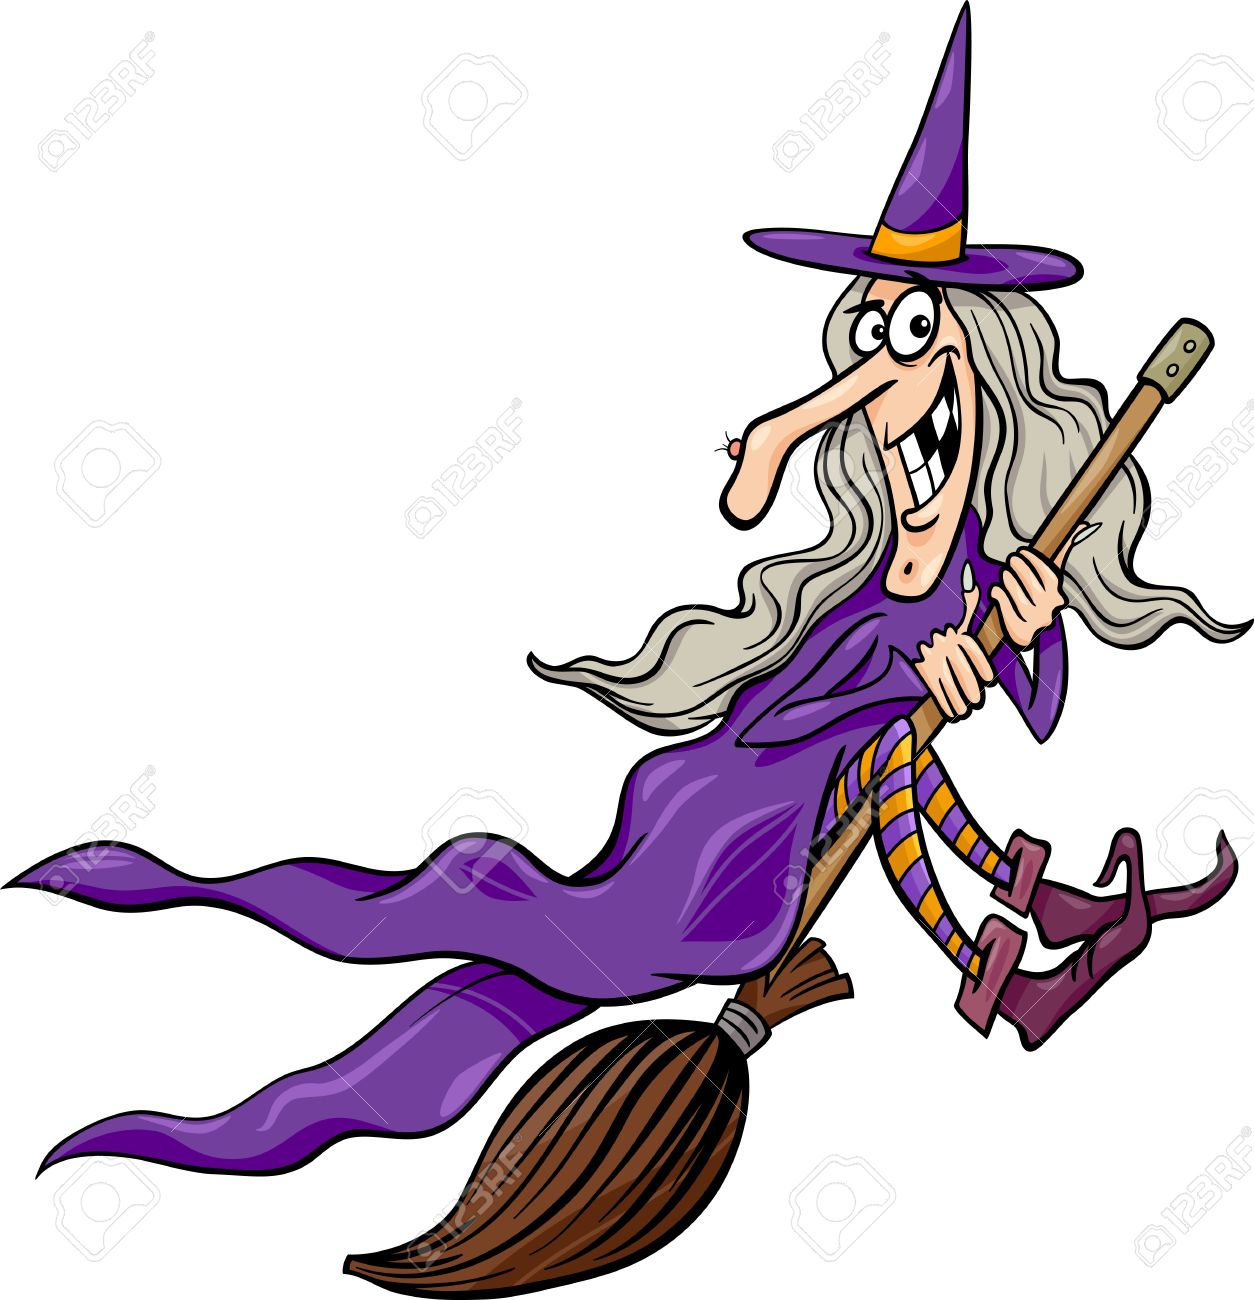 funny halloween witch image cartoon quotes memes animated spiderman clipart images spiderman clipart free download